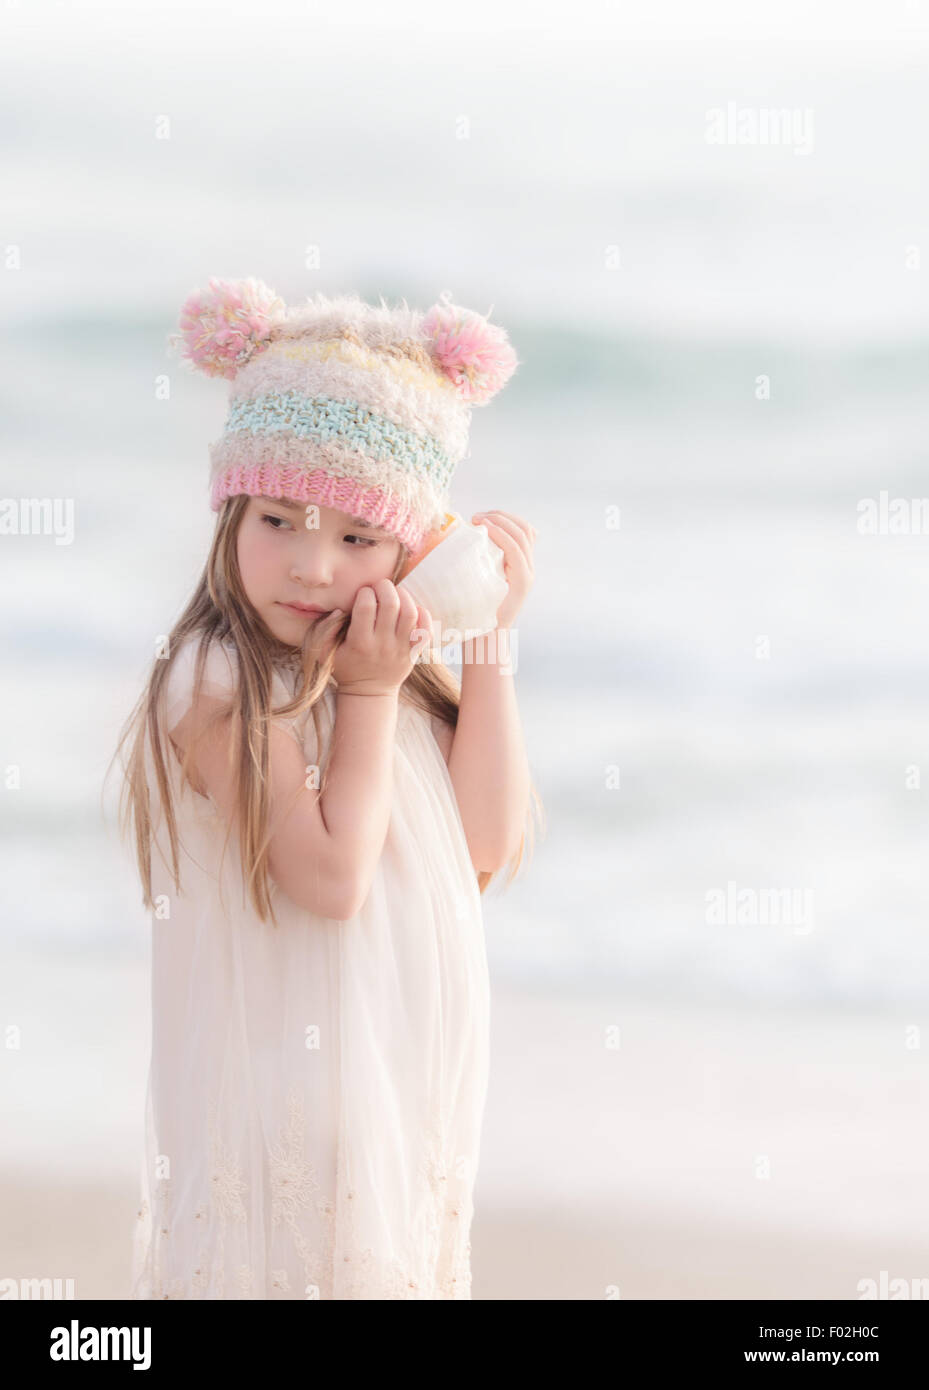 Girl standing on beach listening to a seashell - Stock Image